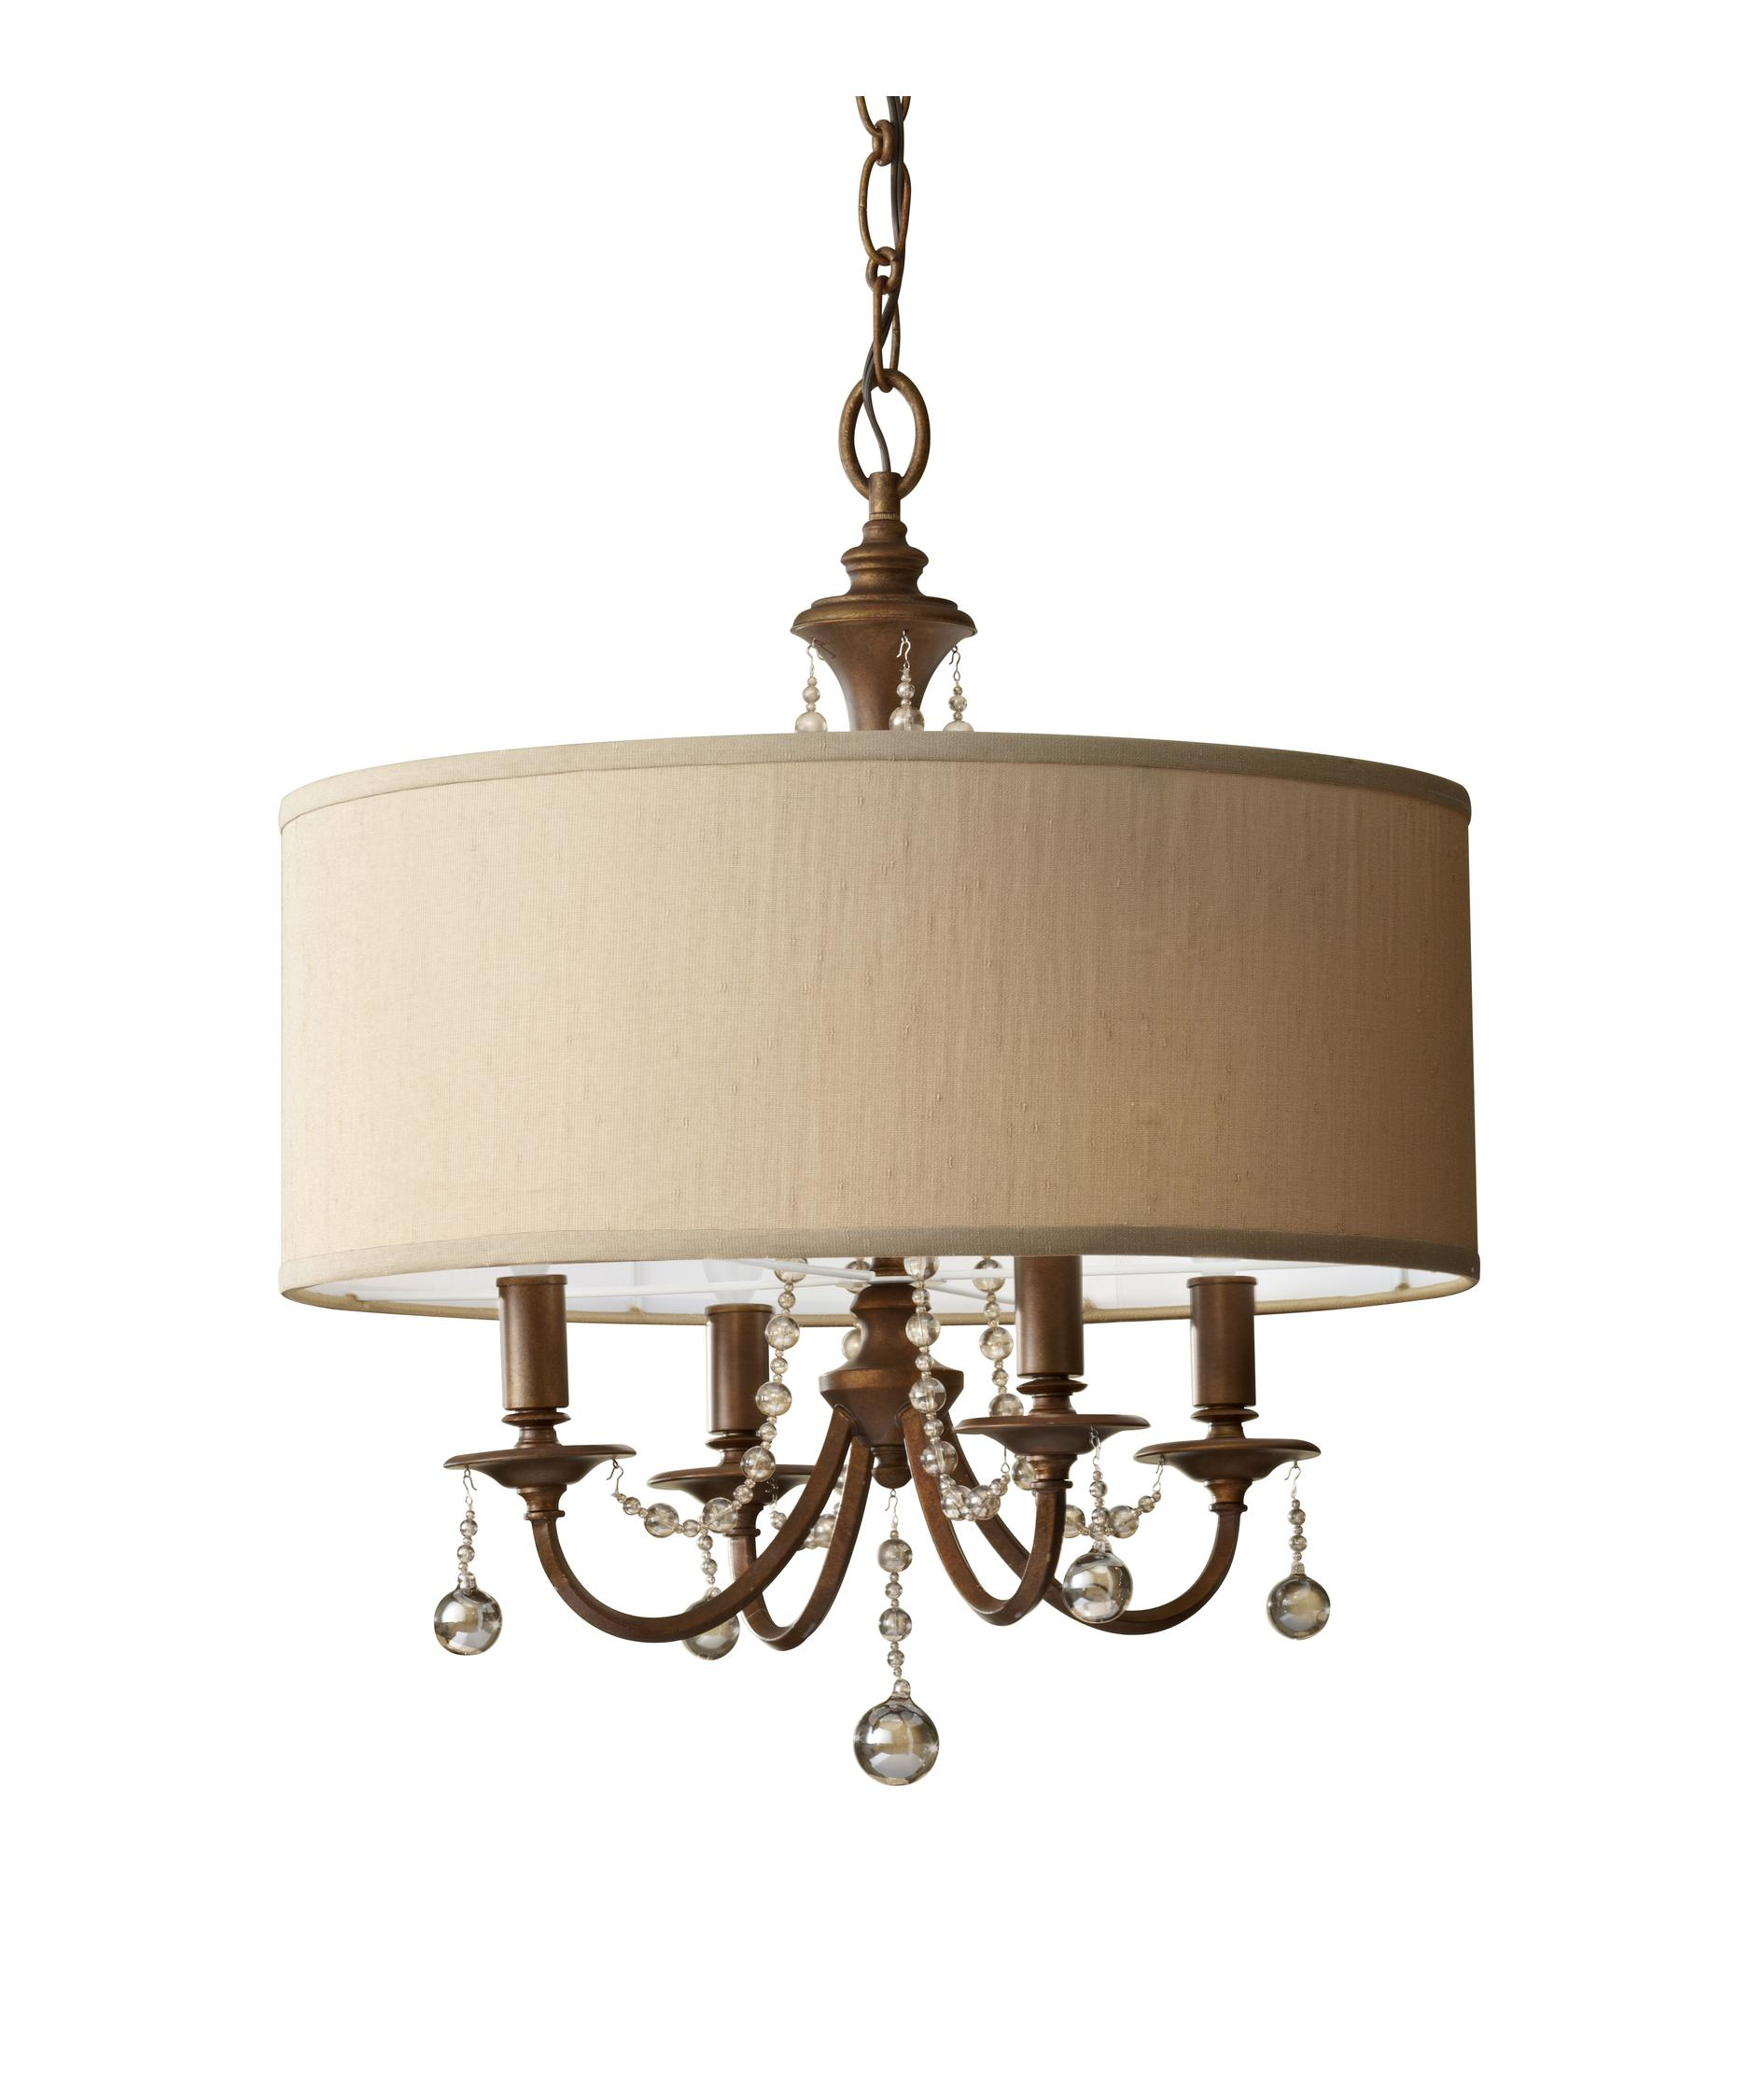 Feiss Chandeliers | Murray Feiss | Murray Feiss Lighting Catalog